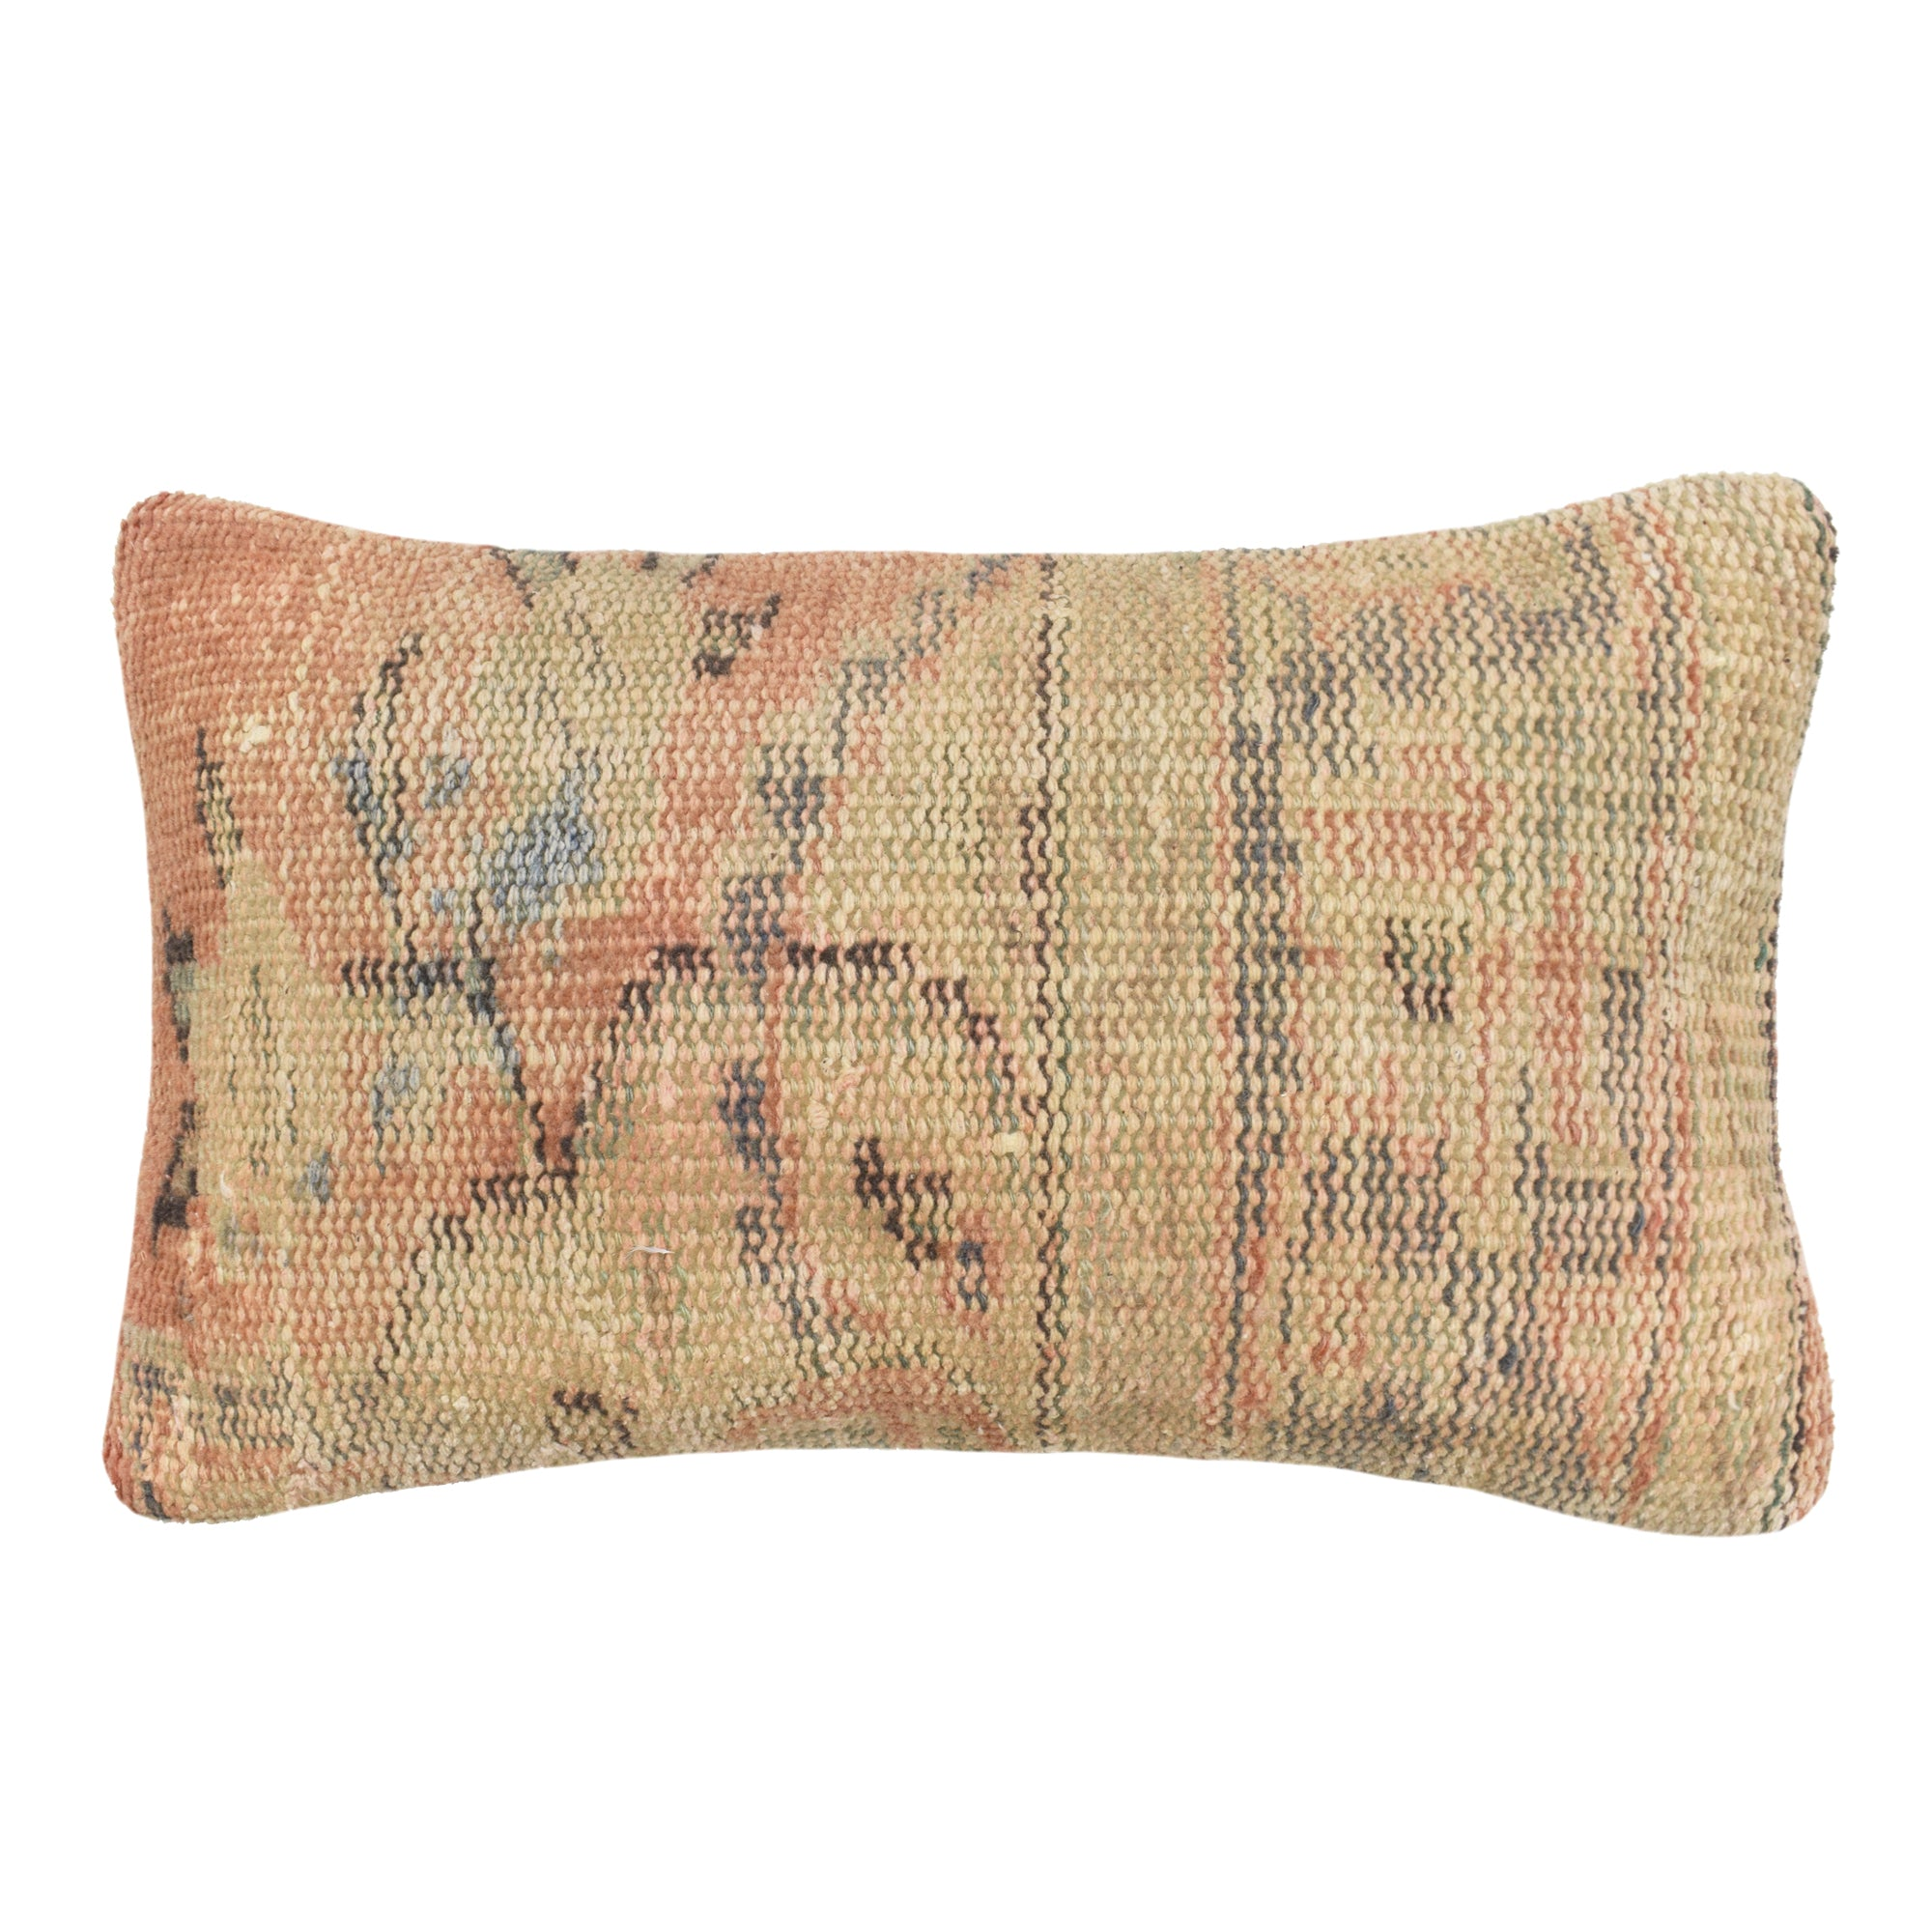 yonder living kilim cushion floral peach pistachio